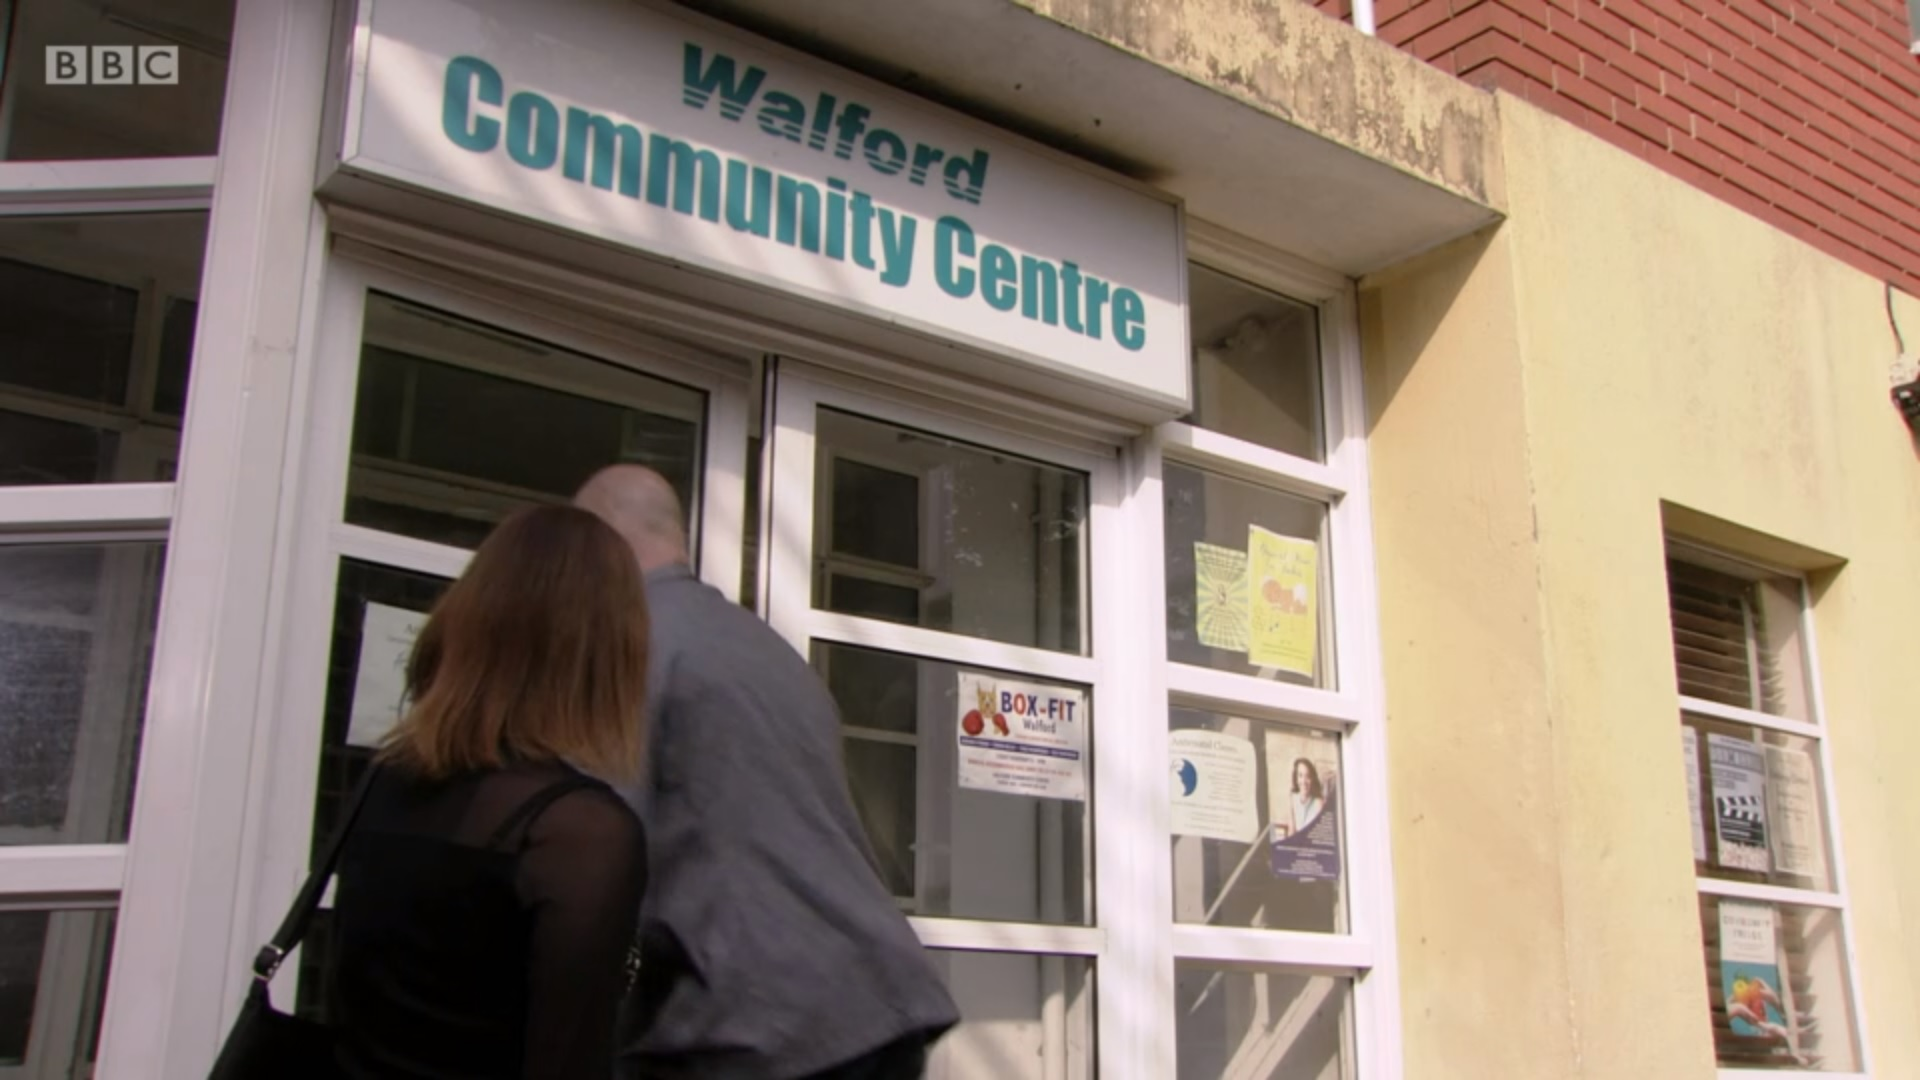 Walford Community Centre